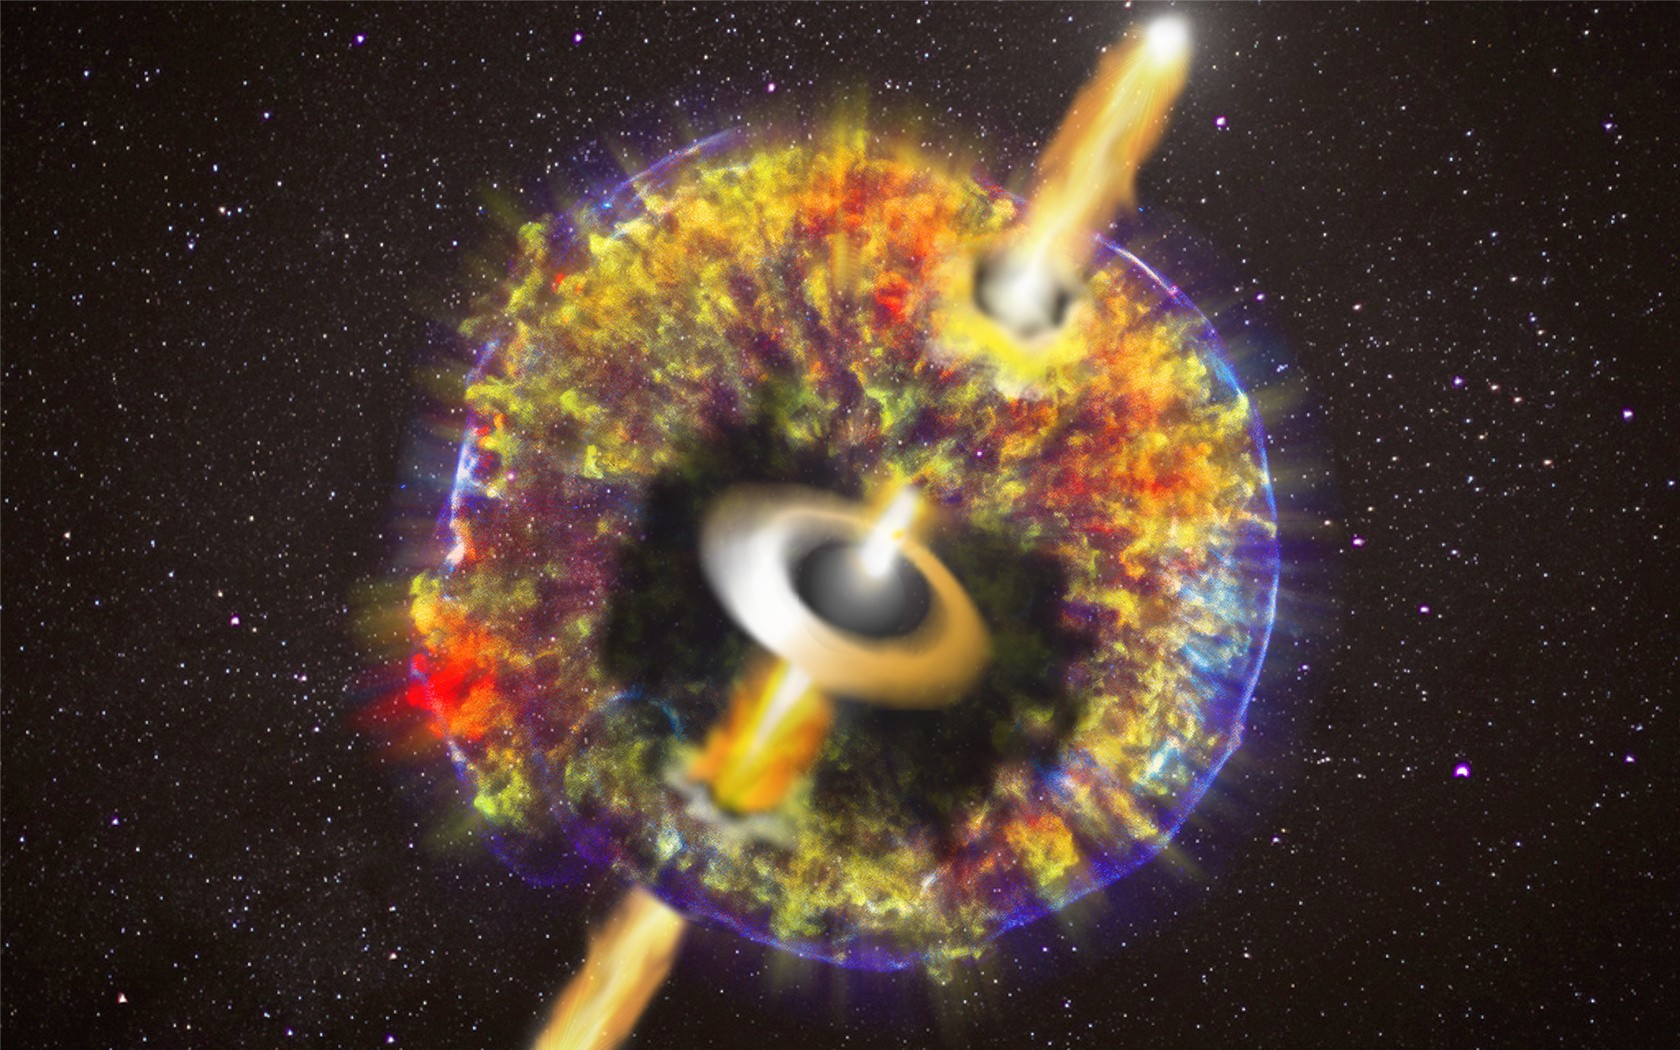 Artist's impression of the merger of two neutron stars with all the material expelled into space and the observed jet after breaking through the shell.